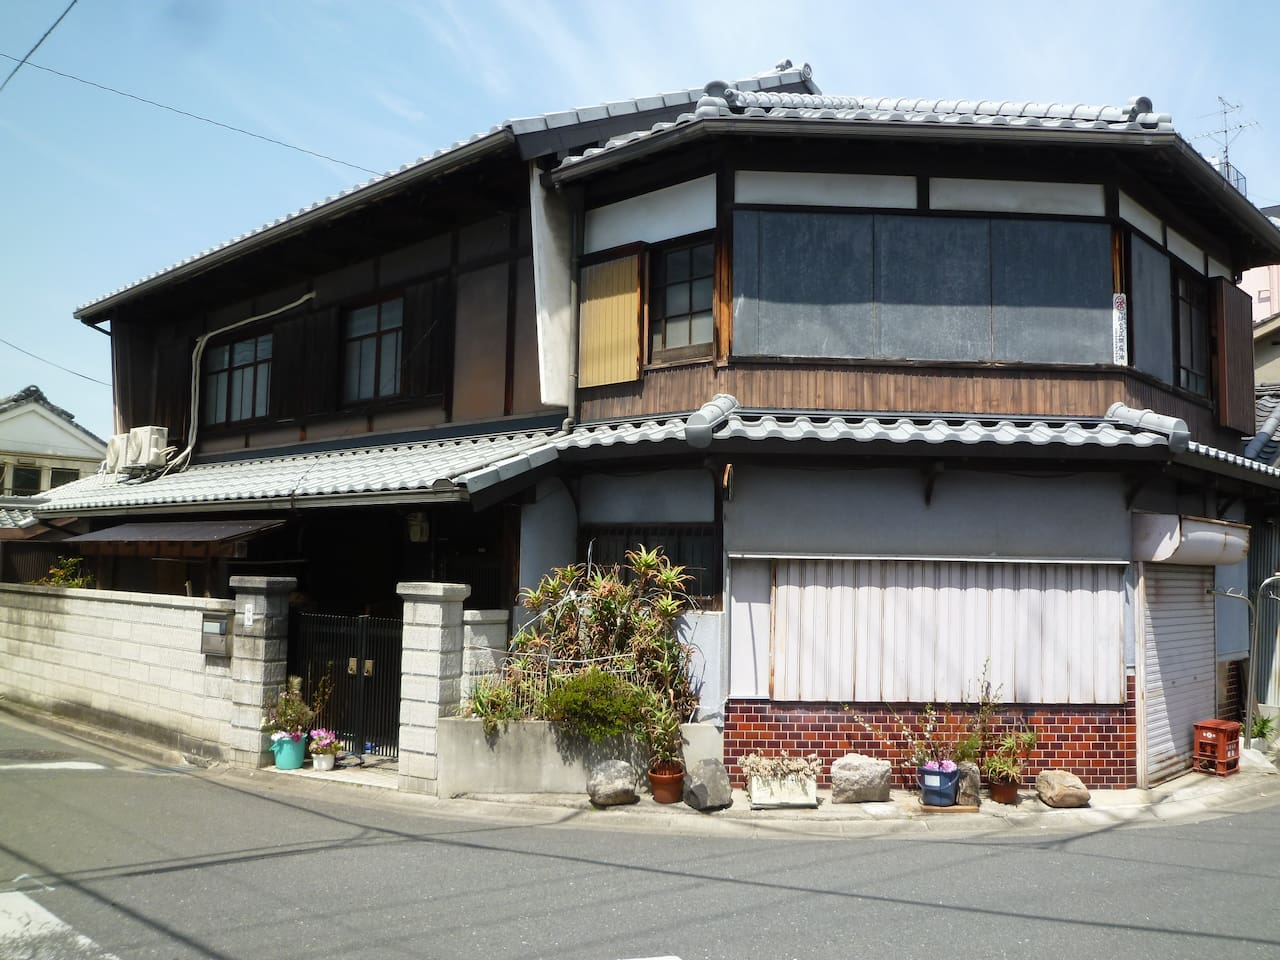 Apperance of the house(外観)